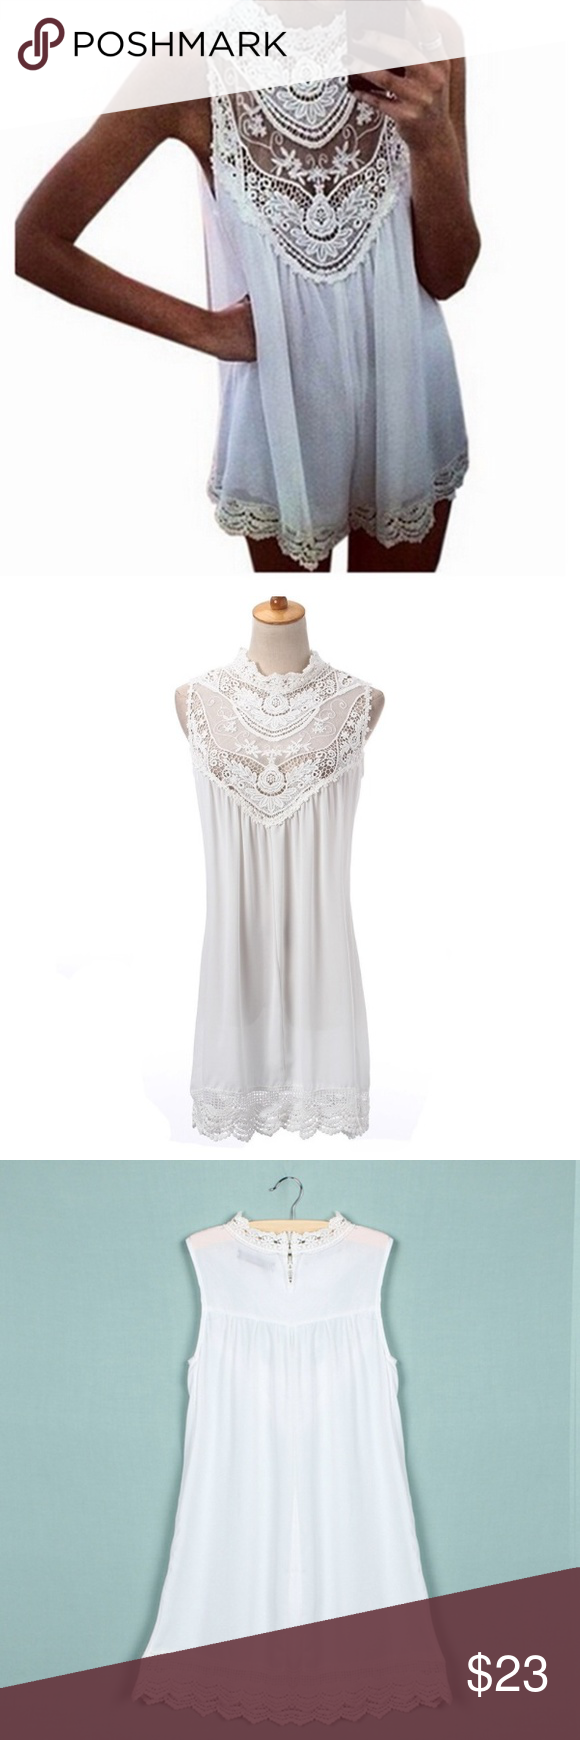 Laced Up Very cute top/dress so nice and wonderful. Tops